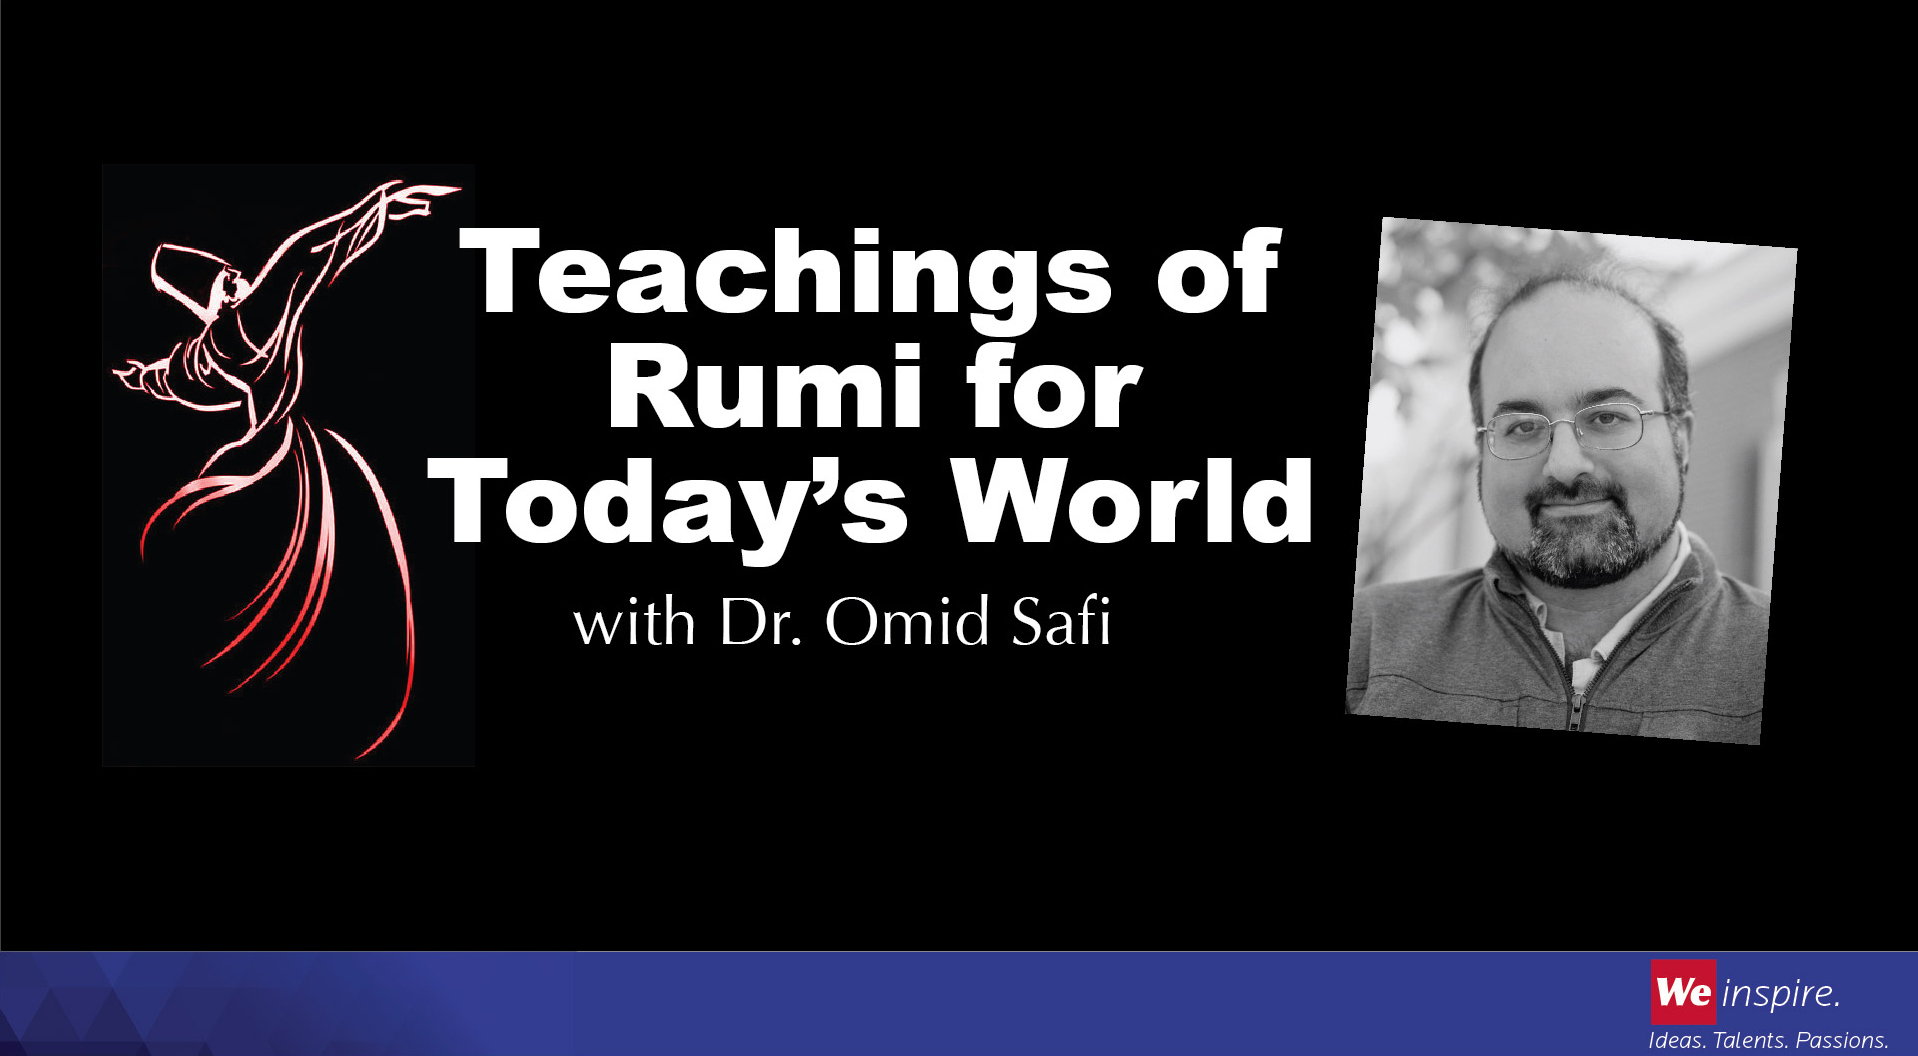 Dr. Raana Akbar Memorial Lecture Series featuring Omid Safi, a leading Muslim public intellectual and director of the Duke Islamic Studies Center